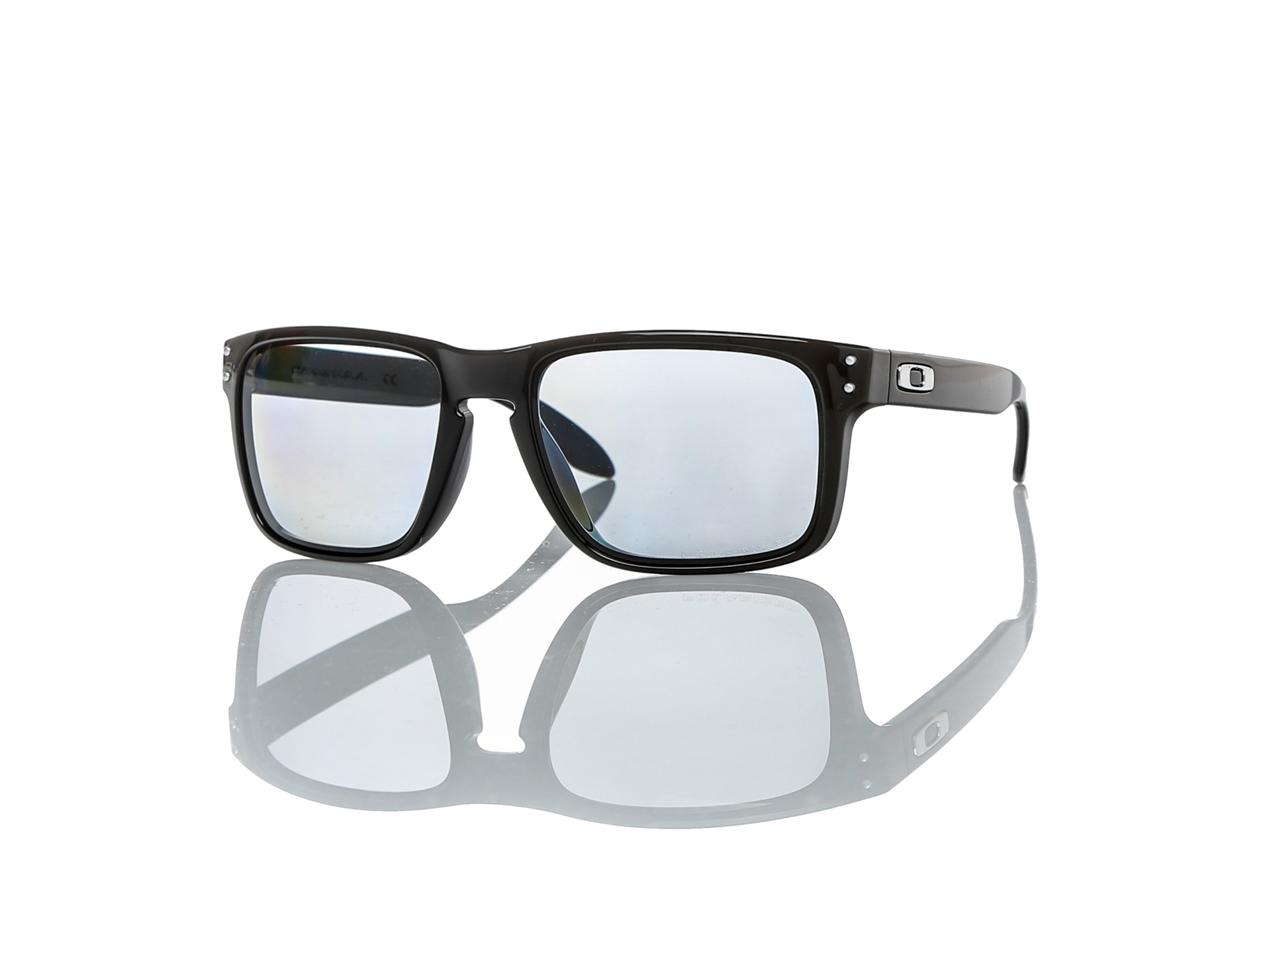 Kreed sunglasses coupon code